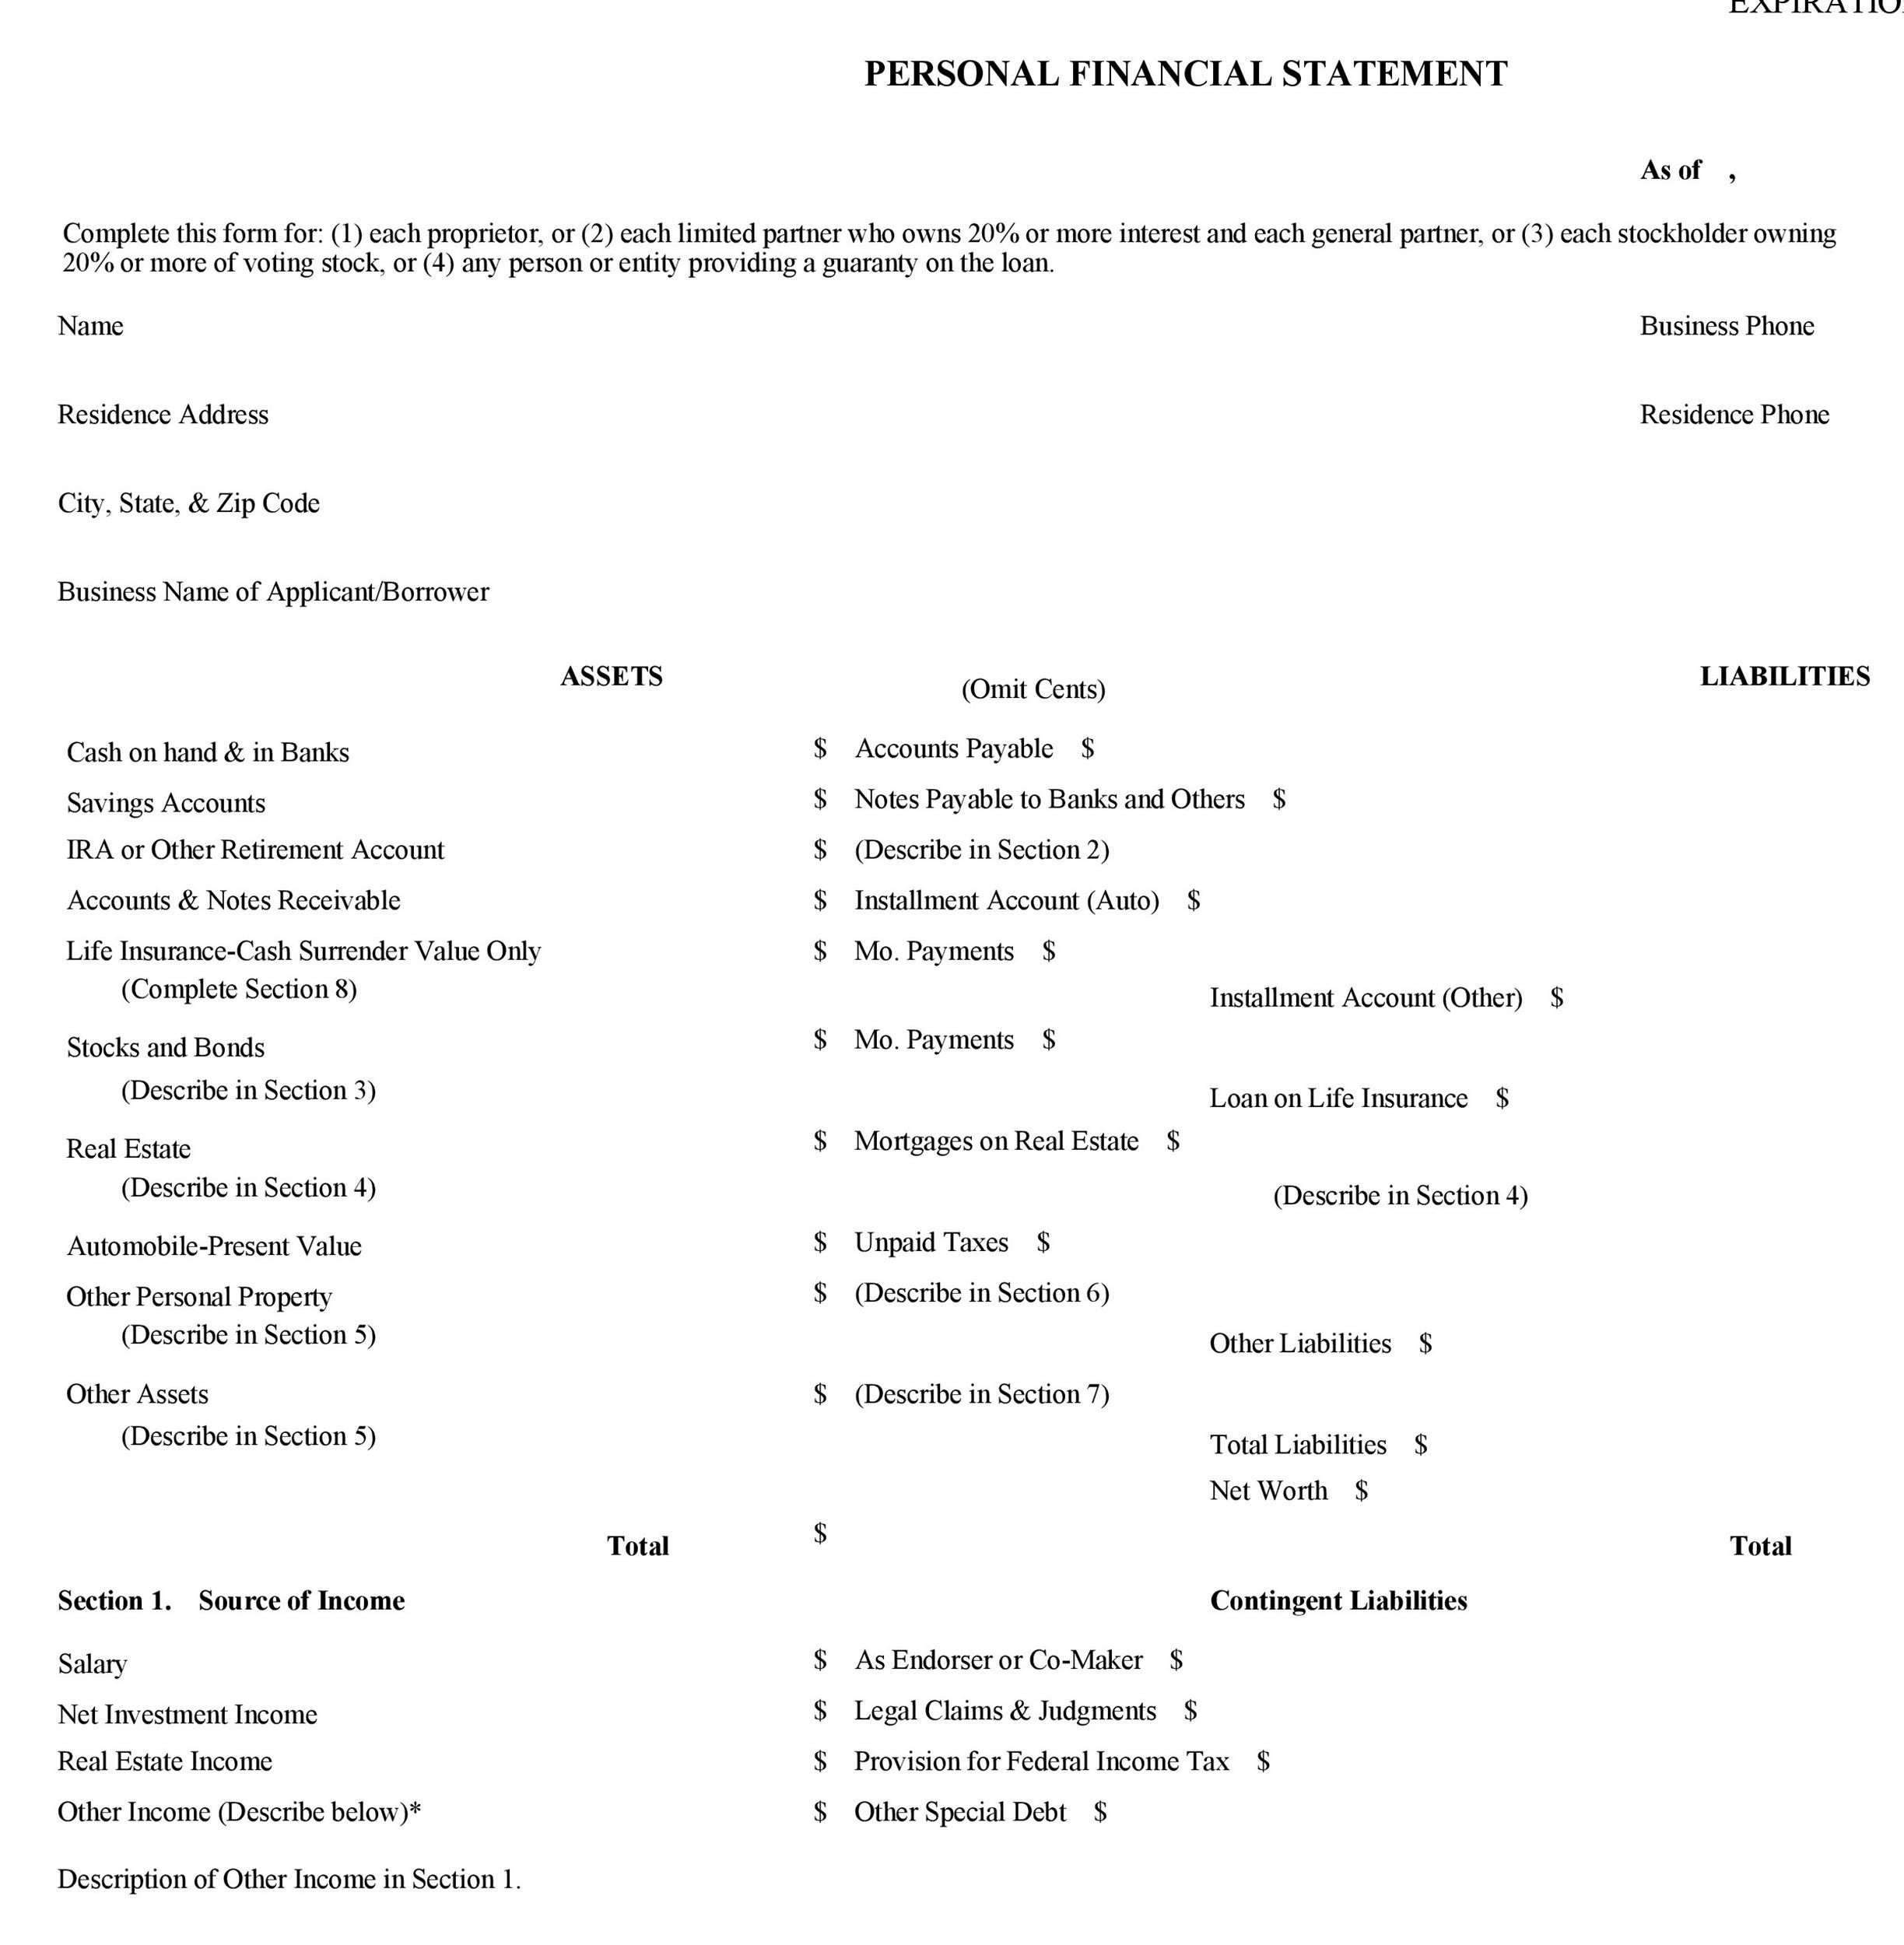 Personal Financial Statemetn - Template